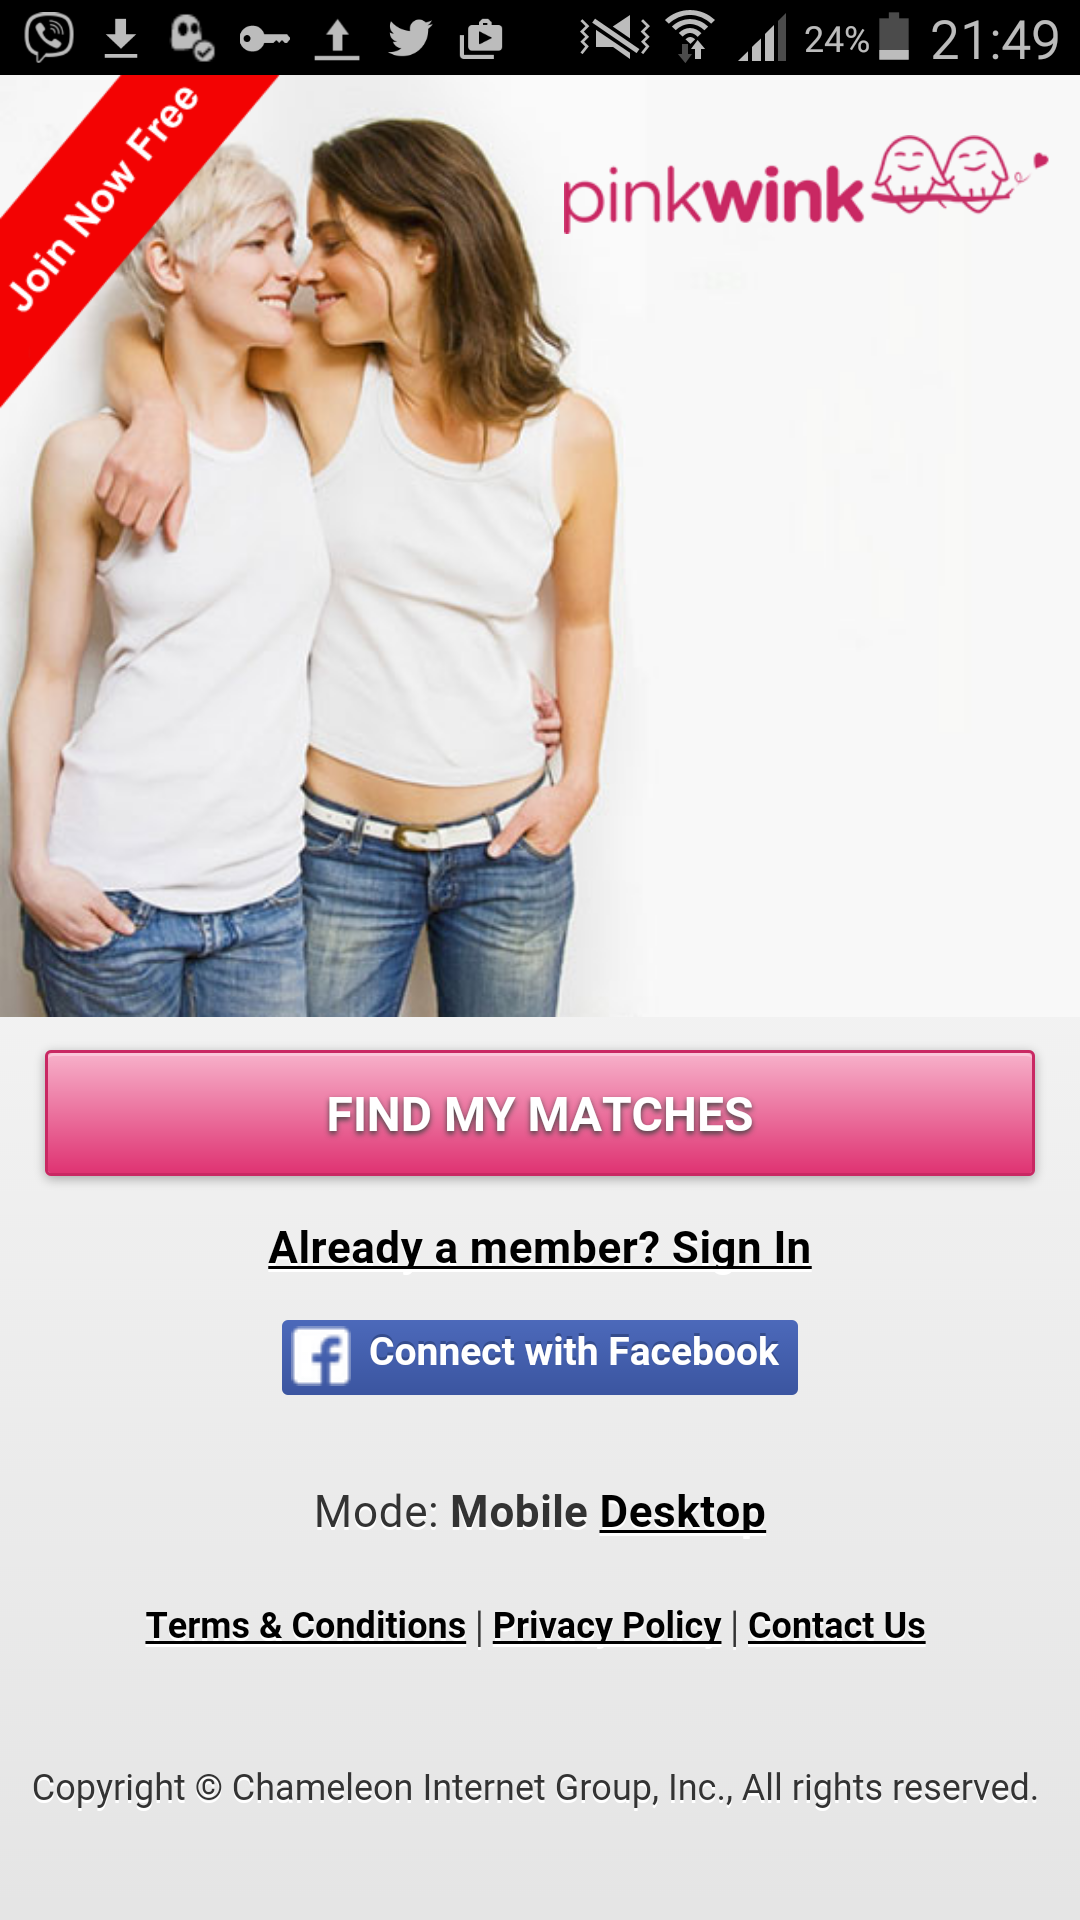 petroleum lesbian dating site How to get your site included in fetchnews results get indexed by goodgophercom news intelligence powered by goodgophercom, the search engine for truth seekers.